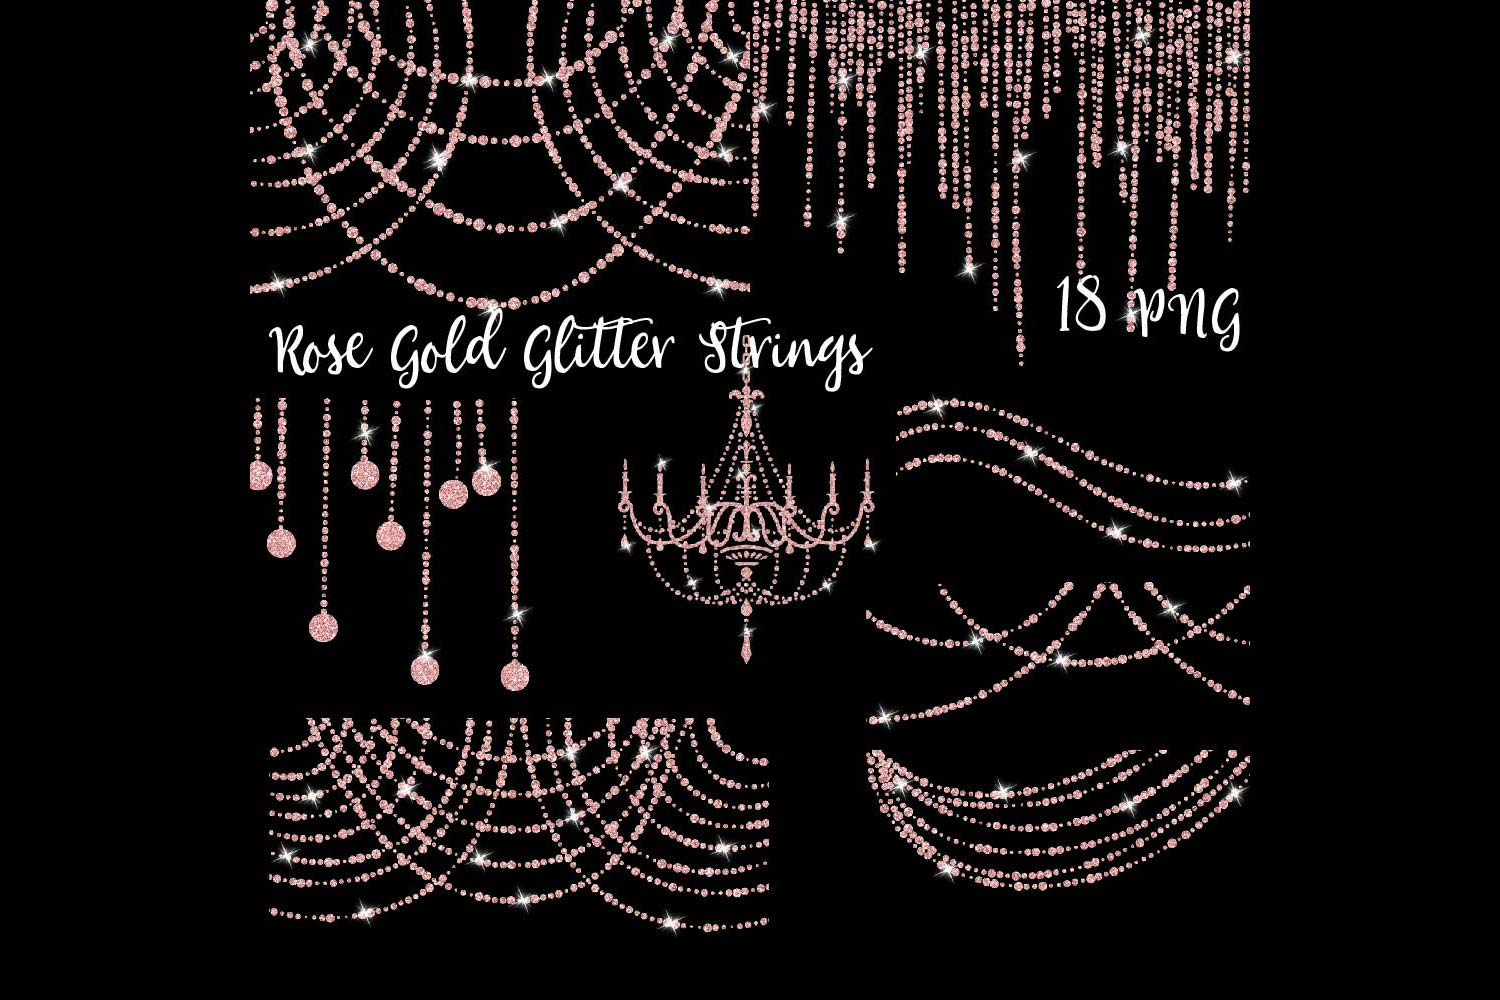 Rose Gold Glitter String Lights Clipart example image 1